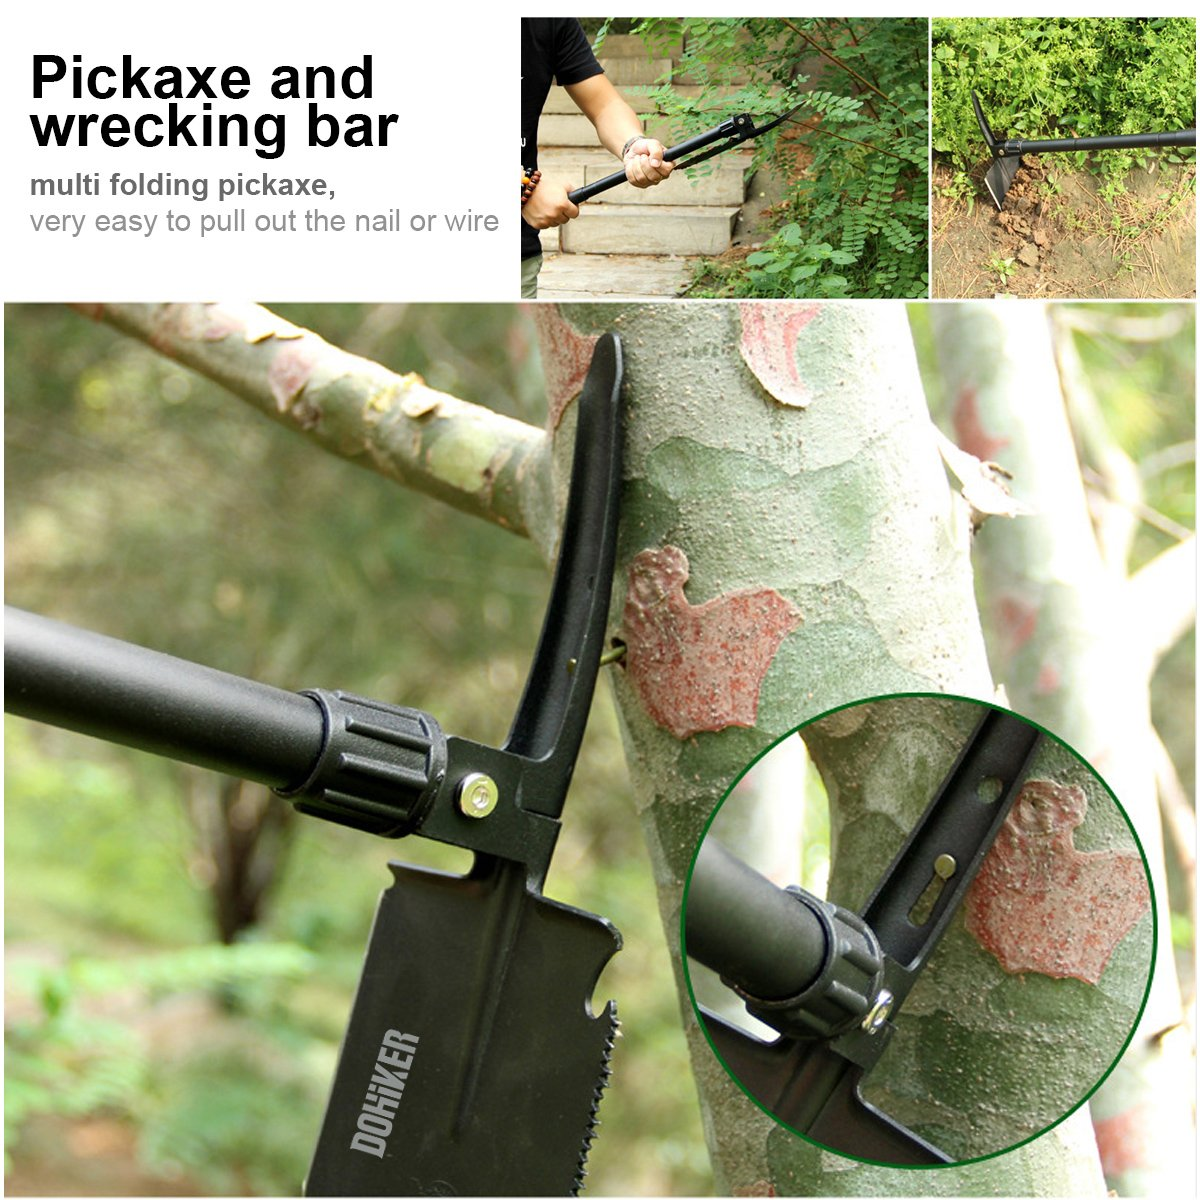 Dohiker Military Folding Shovel,Shovel Survival Spade Entrenching Tool with Carrying Pouch Metal Handle for Camping, Hiking, Trekking, Gardening,Fishing,Backpacking by Dohiker (Image #4)